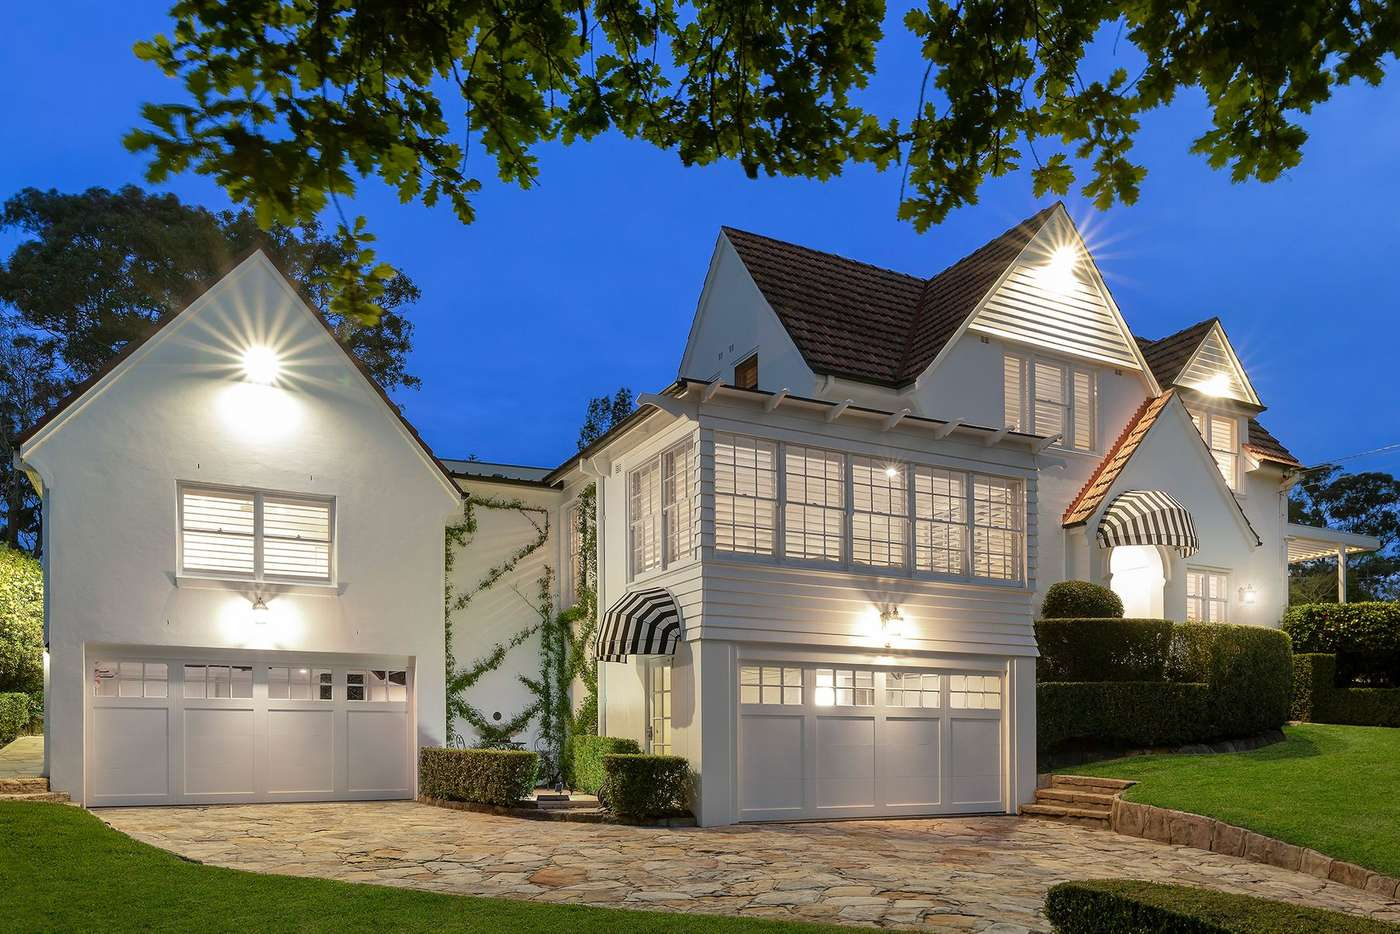 Main view of Homely house listing, 27 Selwyn Street, Pymble NSW 2073